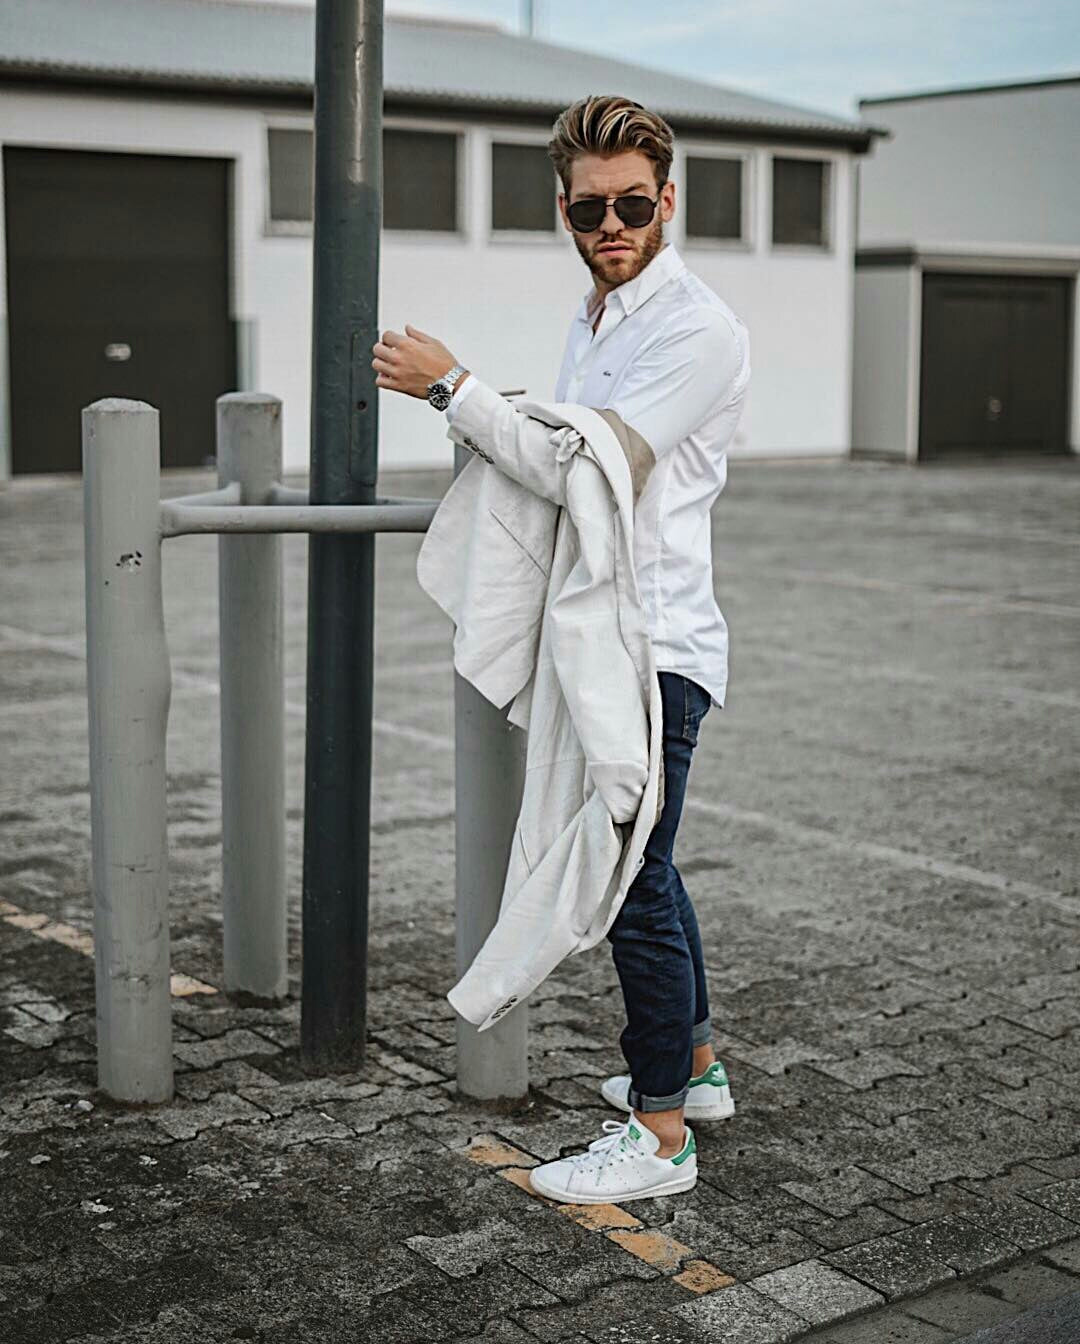 7 Smart Casual Outfit Ideas For Men